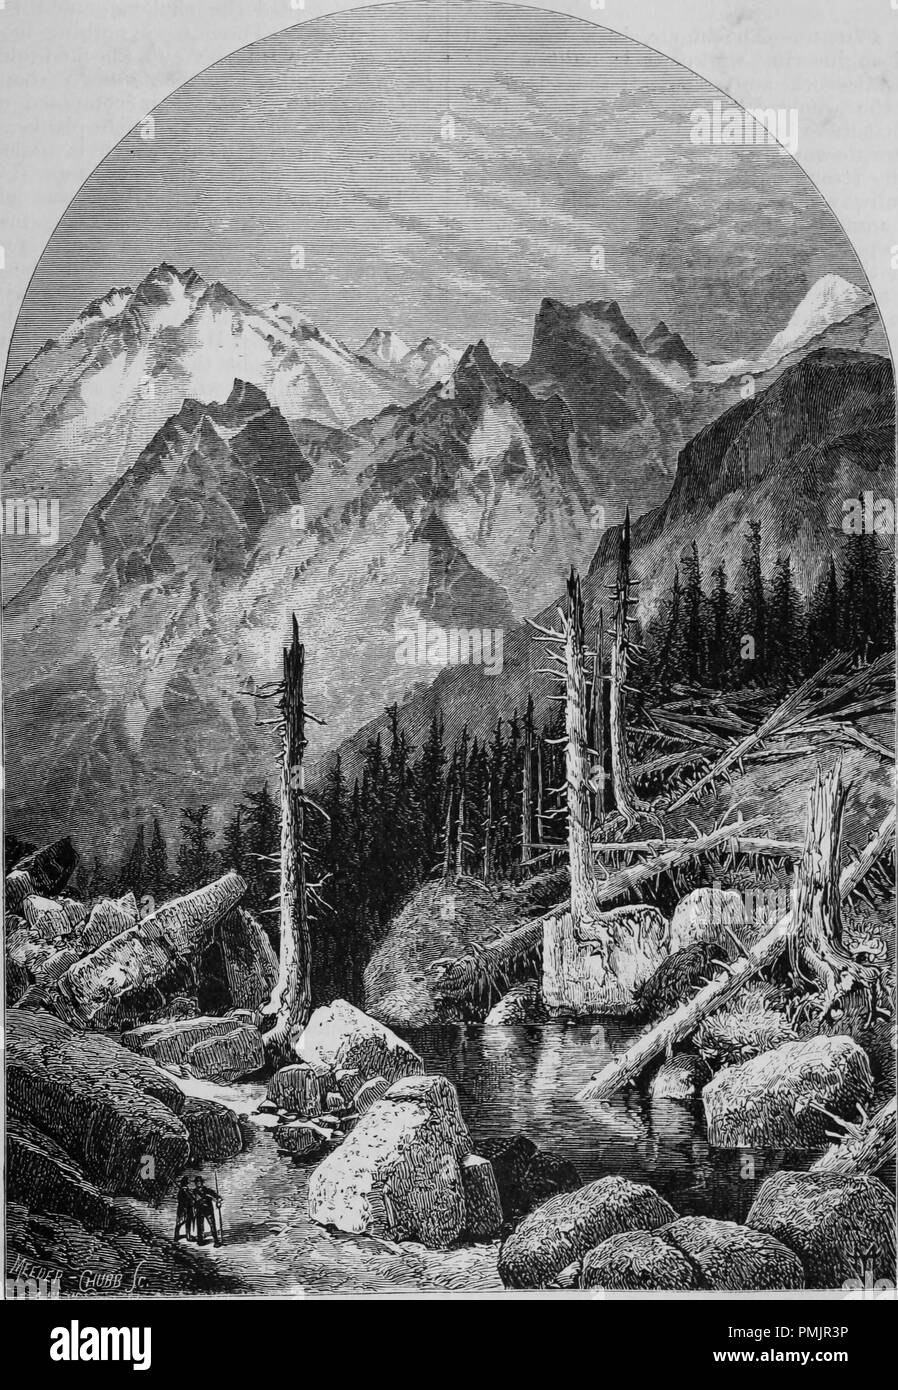 Engraving of the Summits of Sierra Nevada Mountains, from the book 'The Pacific tourist', 1877. Courtesy Internet Archive. () - Stock Image